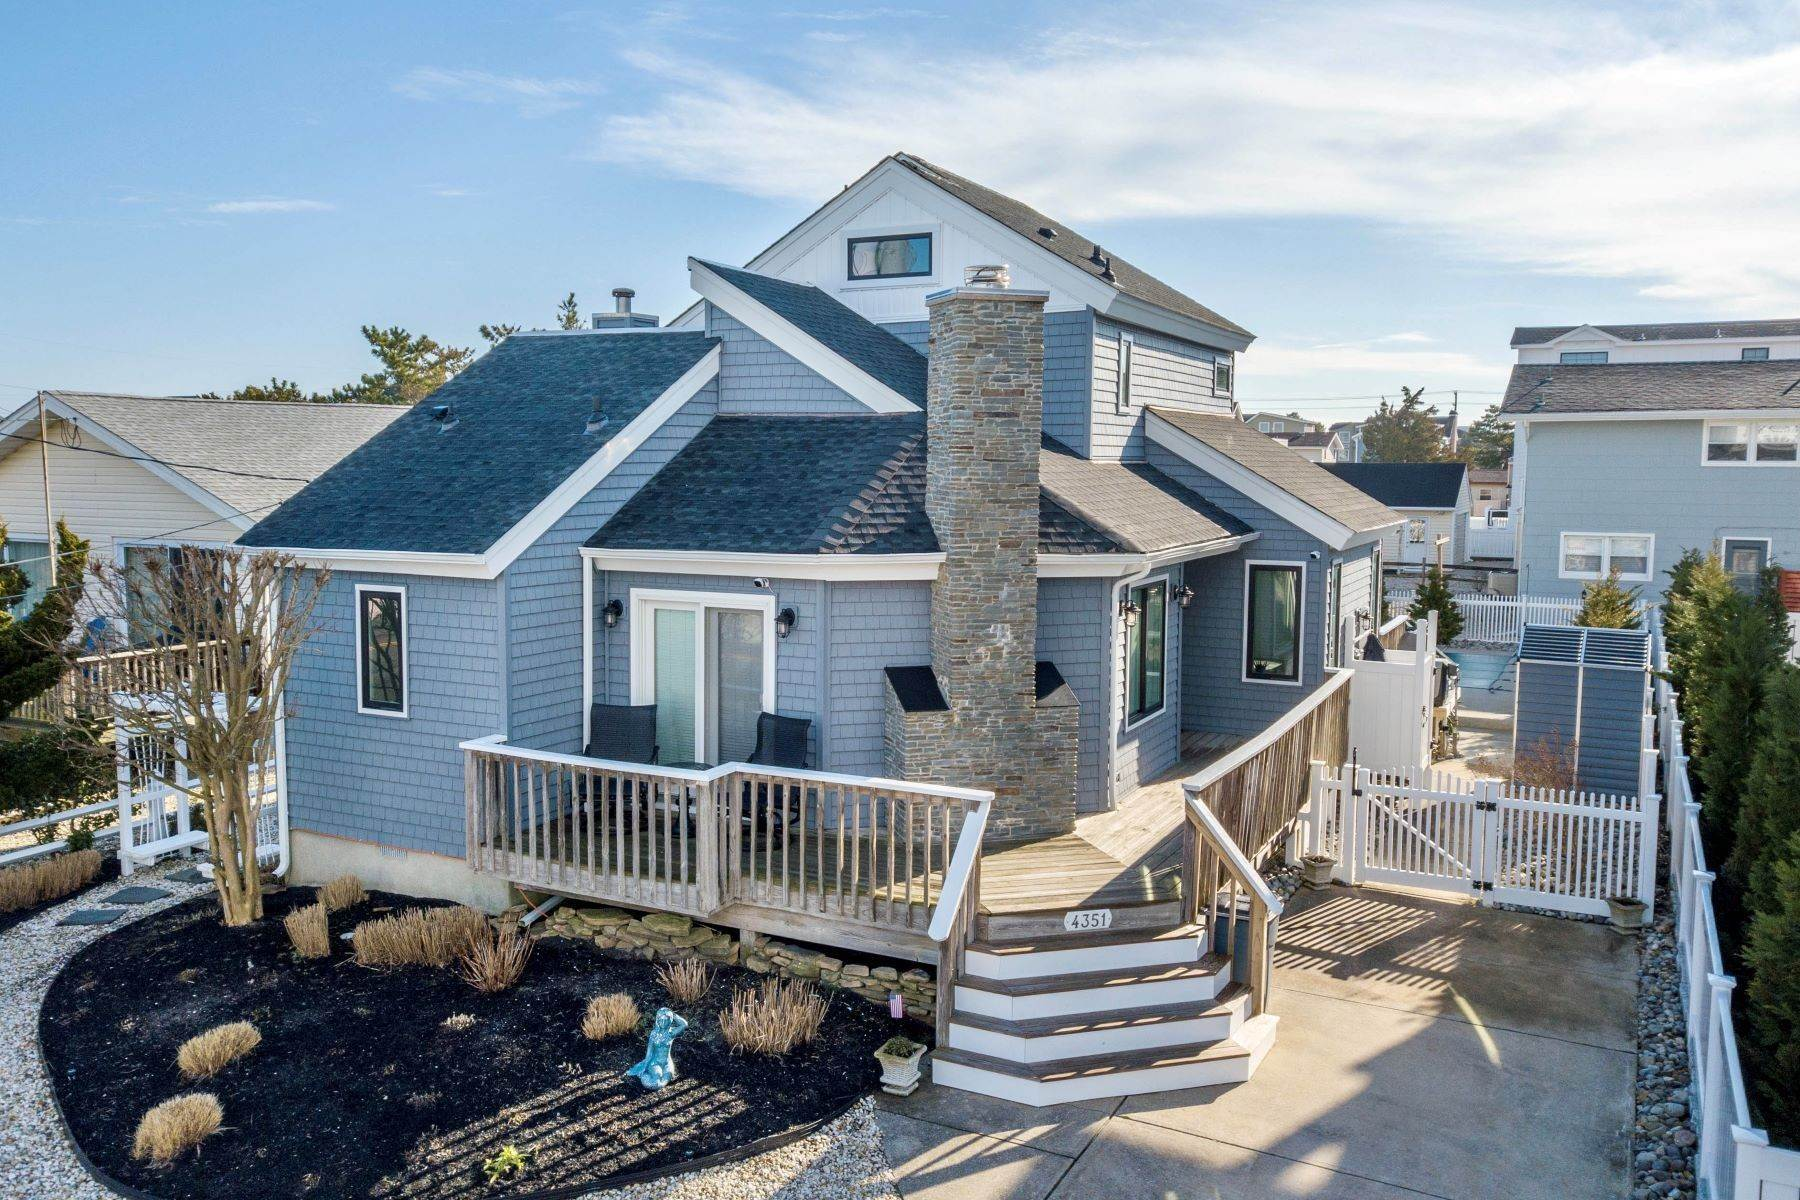 Single Family Homes for Sale at Renovated Avalon Starter Home 4351 Ocean Drive, Avalon, New Jersey 08202 United States